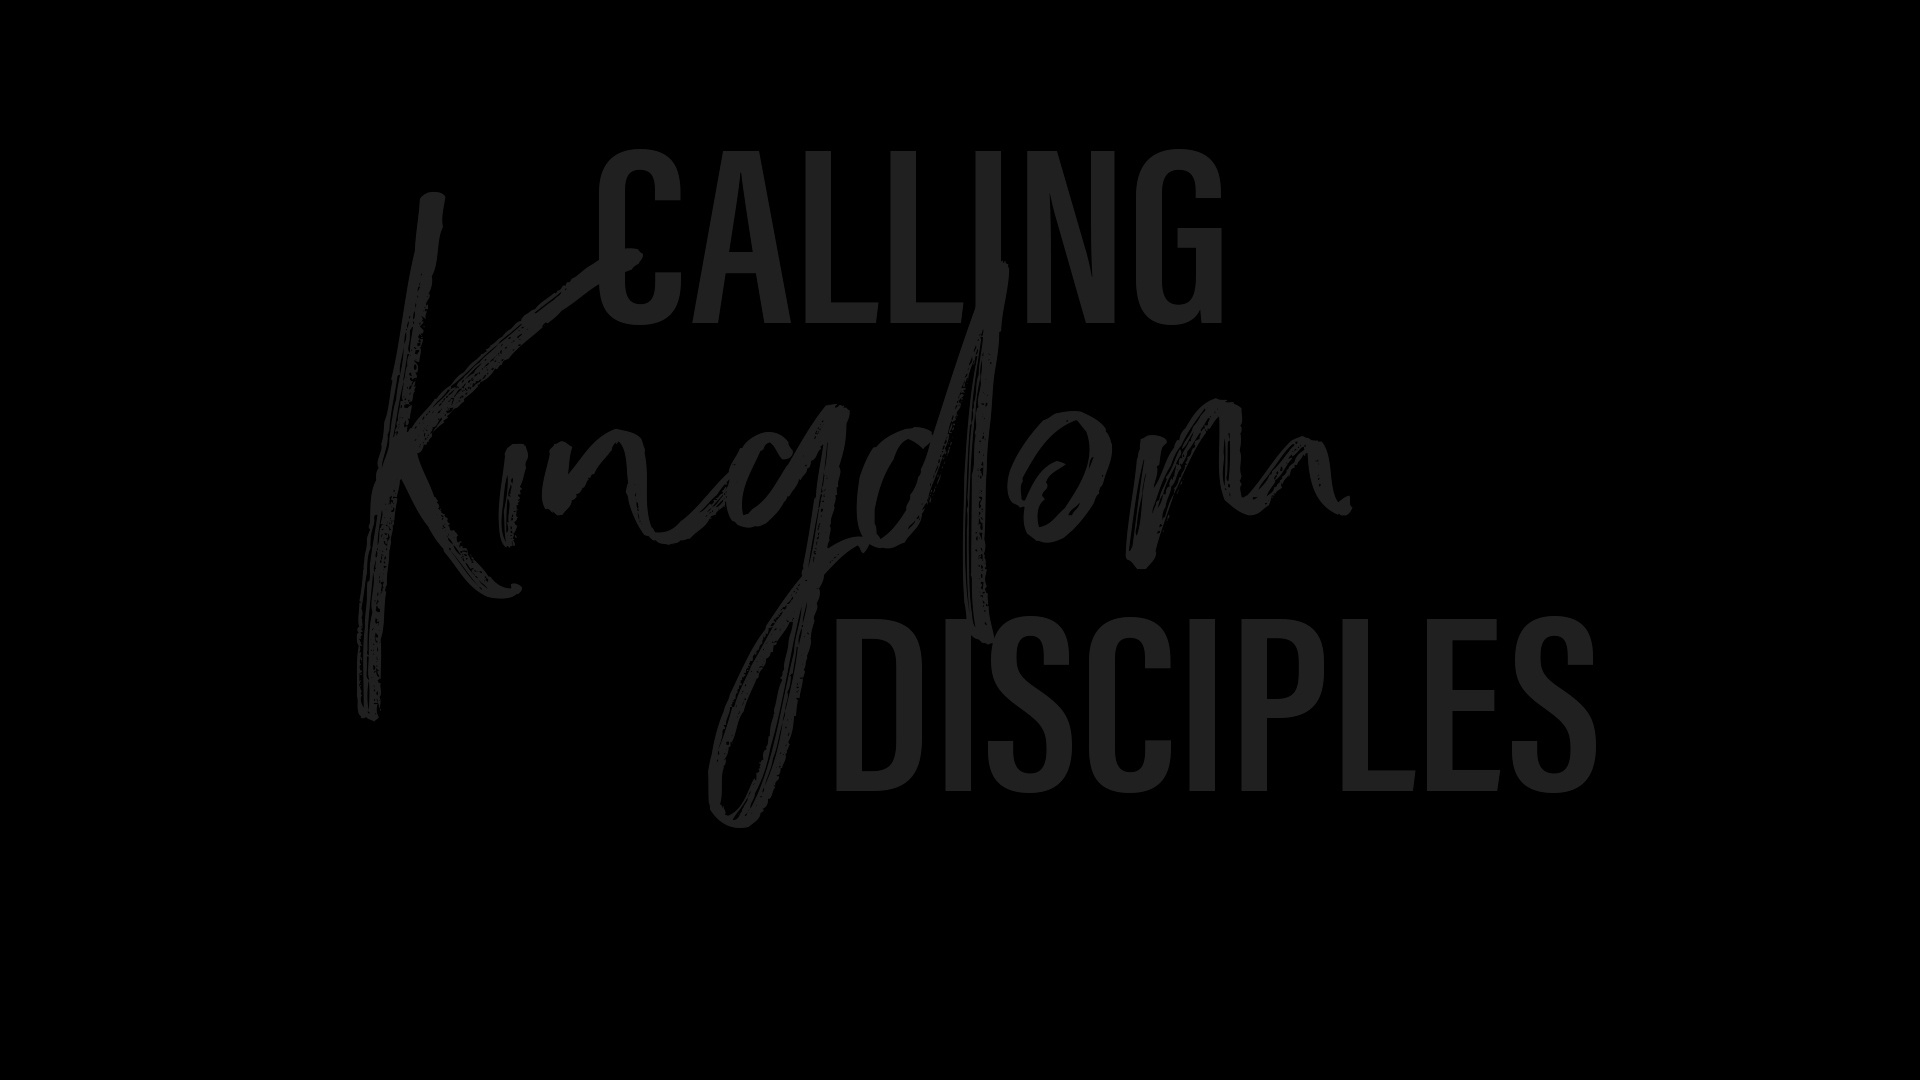 Calling Kingdom Disciples